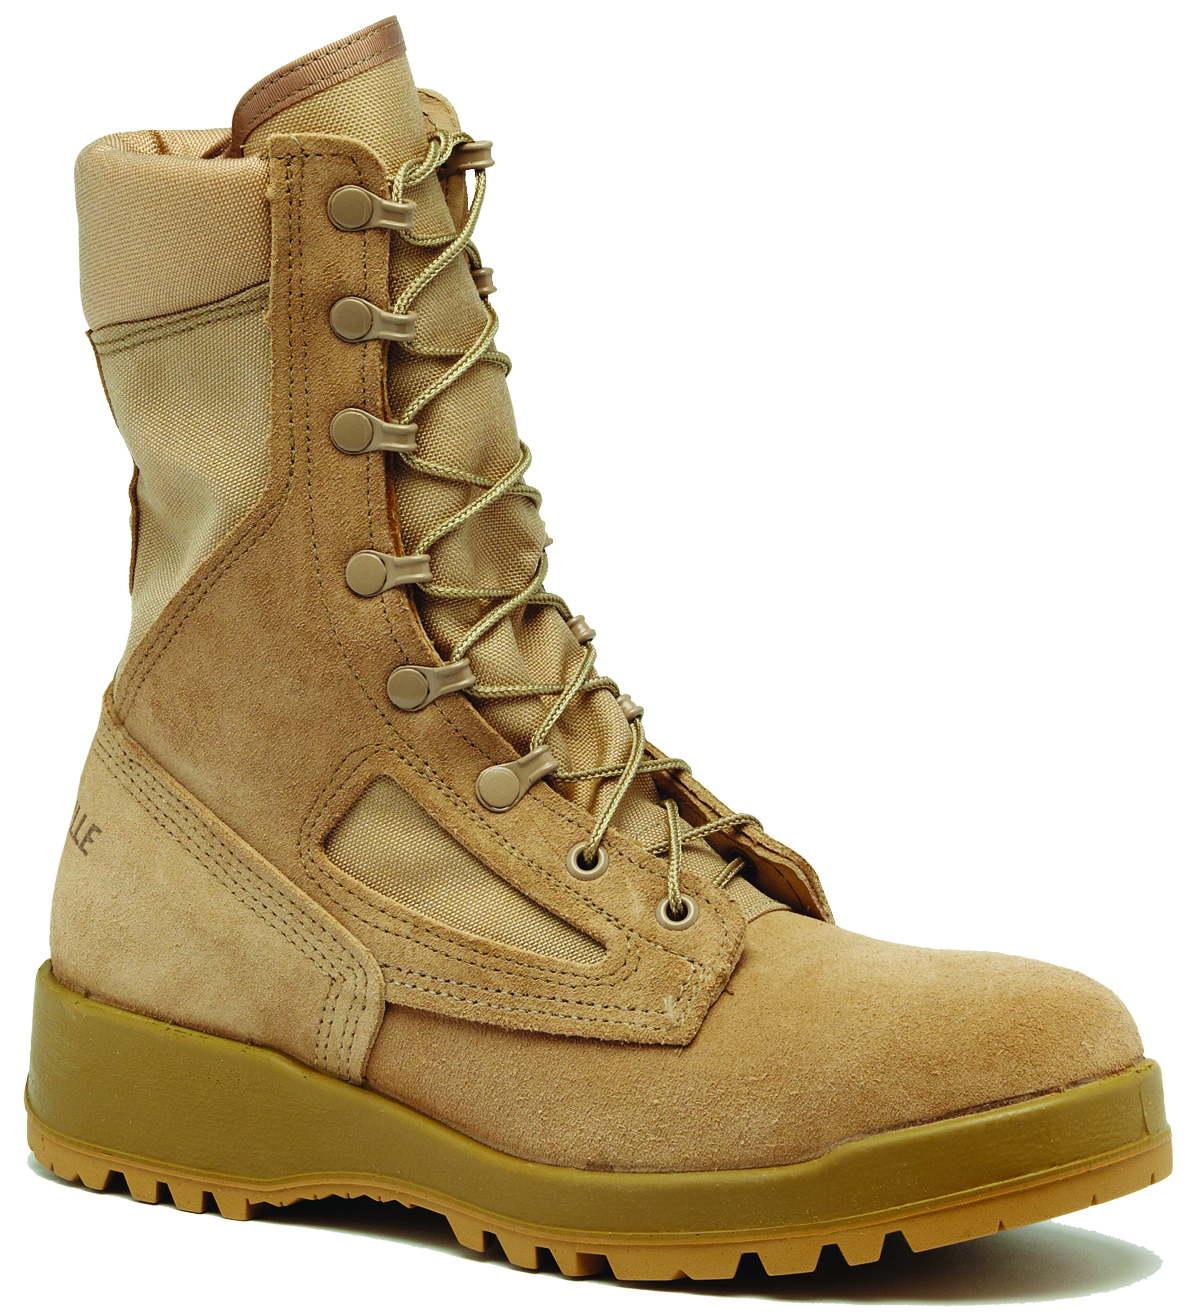 Womens Military Boots on Sale at Cheap, Discount Prices